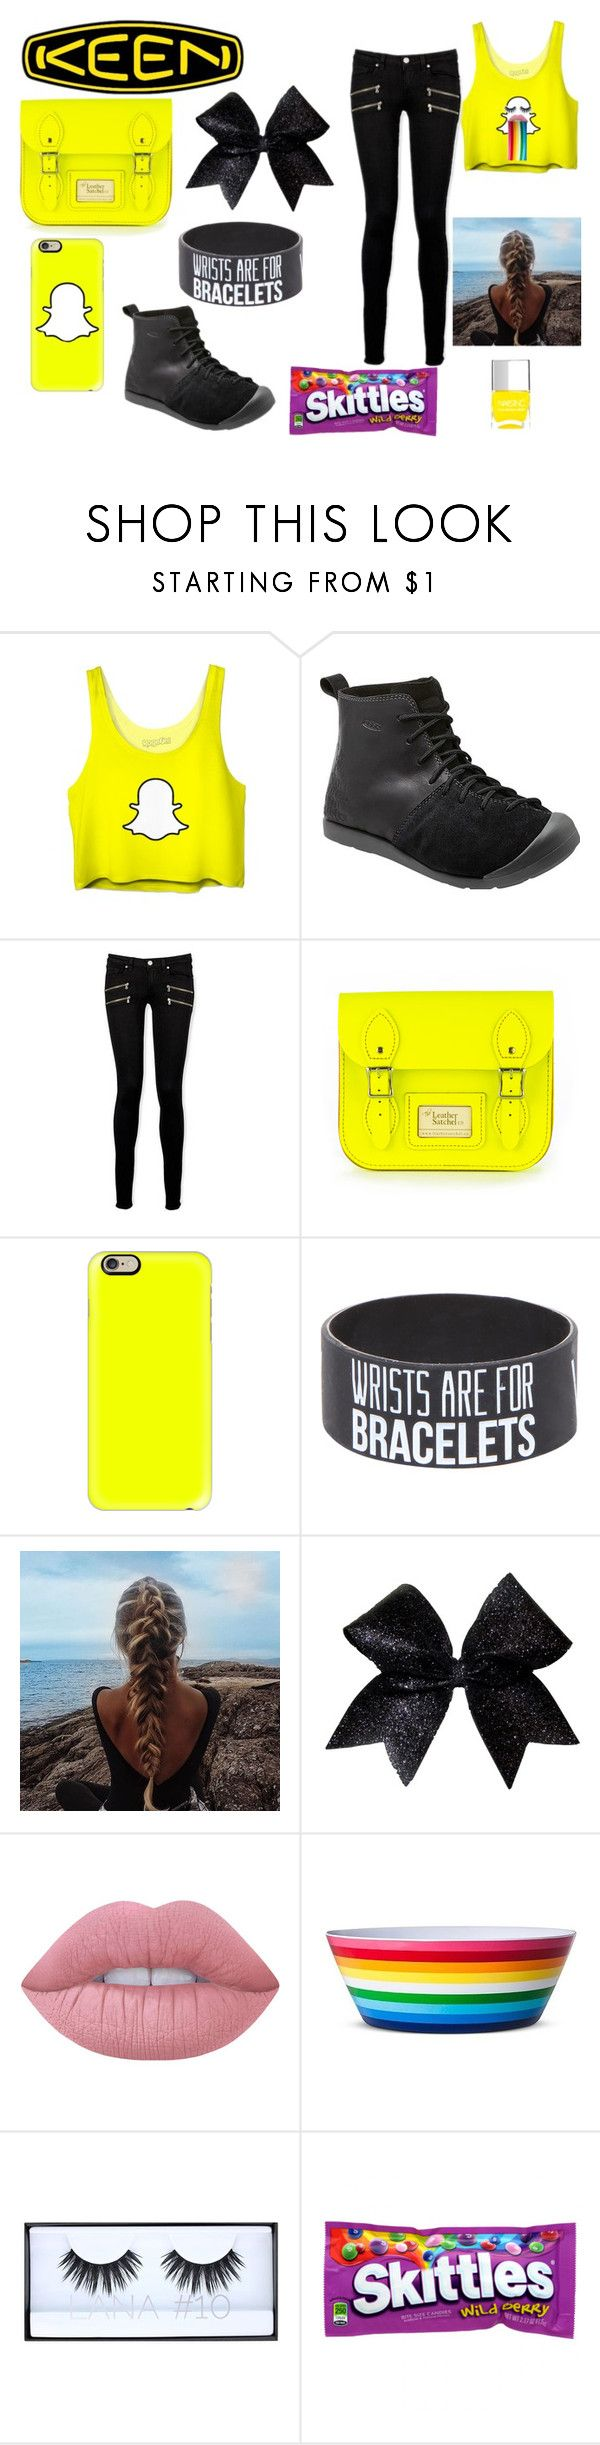 """""""So Fresh and So Keen: Contest Entry"""" by kyra-warren on Polyvore featuring Keen Footwear, Paige Denim, Casetify, Lime Crime, Huda Beauty, Nails Inc. and keen"""